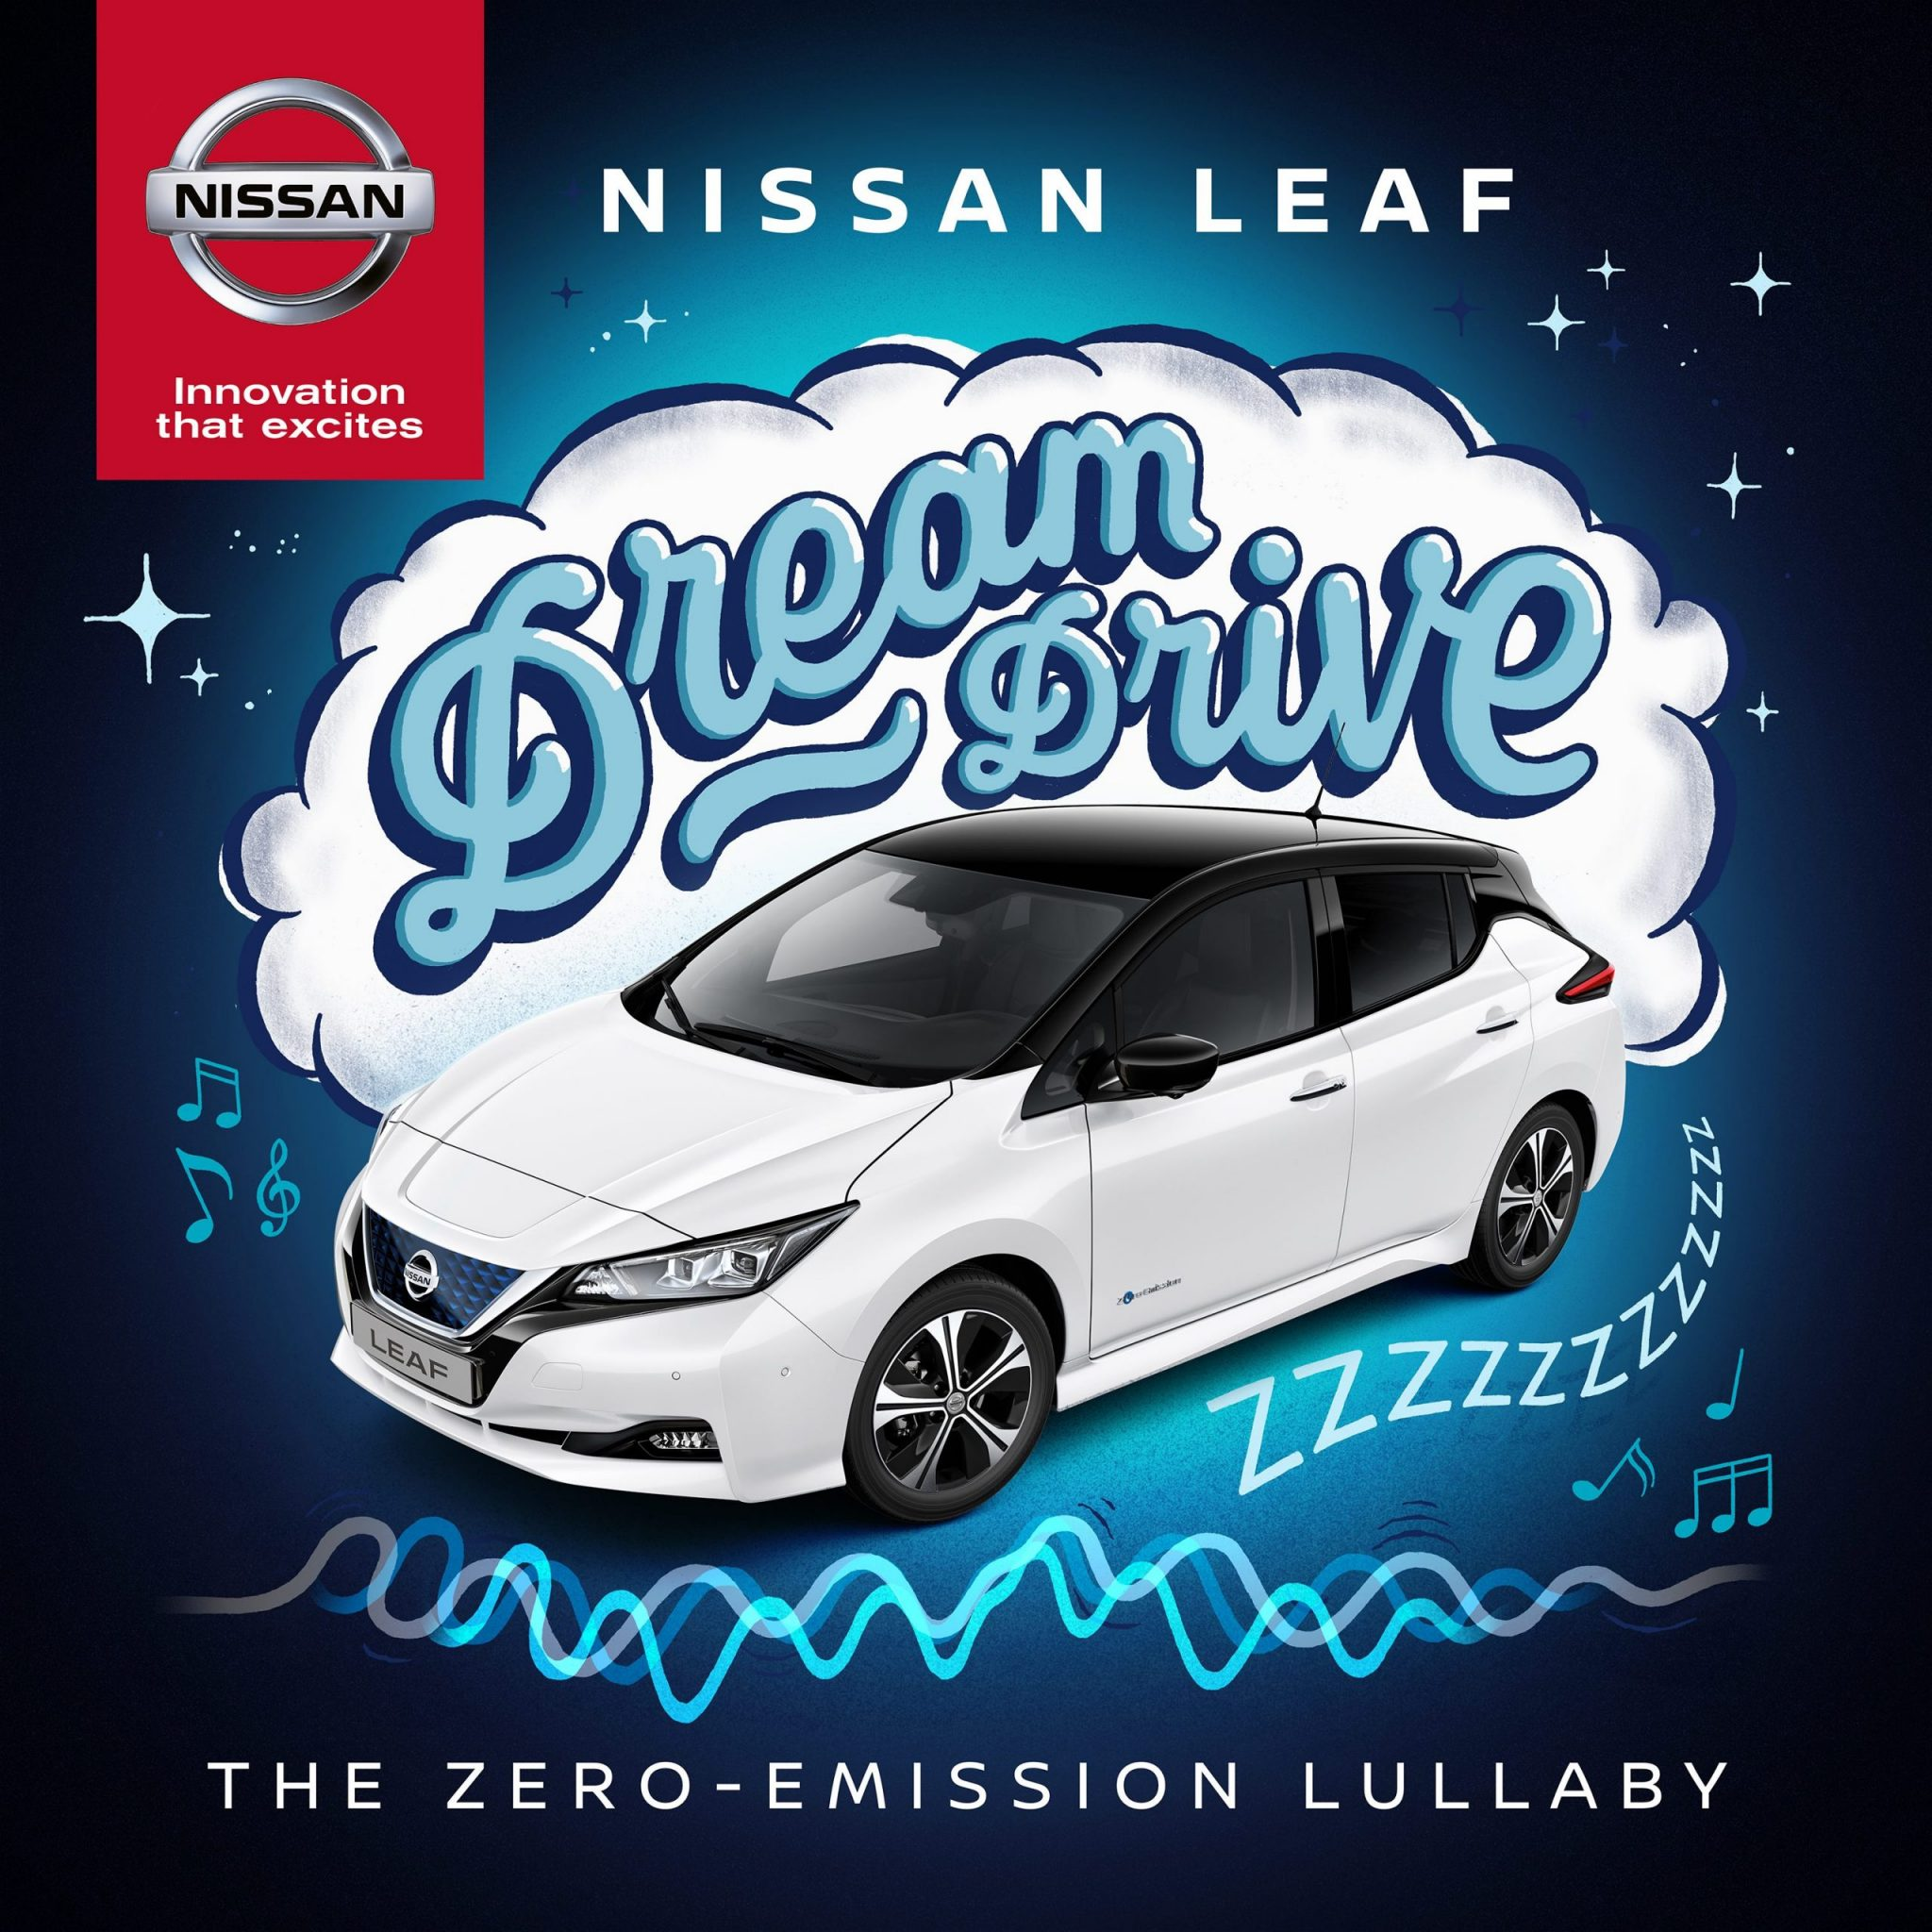 Nissan LEAF Dream Drive – the new zero-emission lullaby